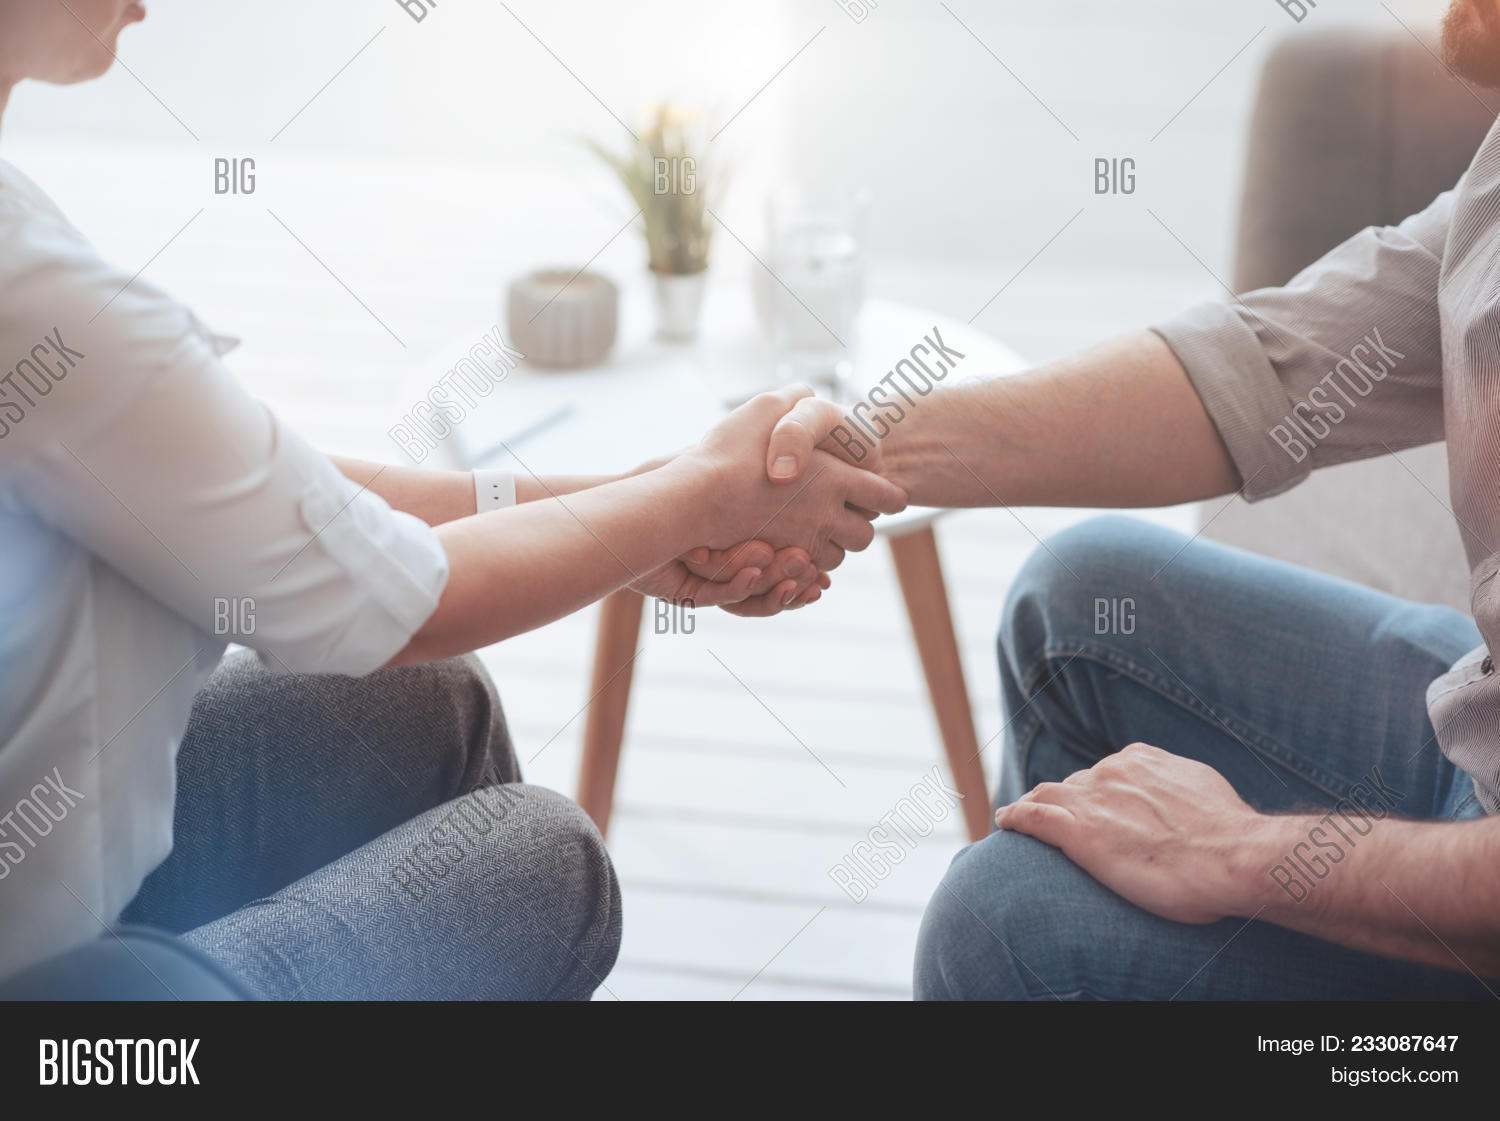 First Meeting Image Photo Free Trial Bigstock